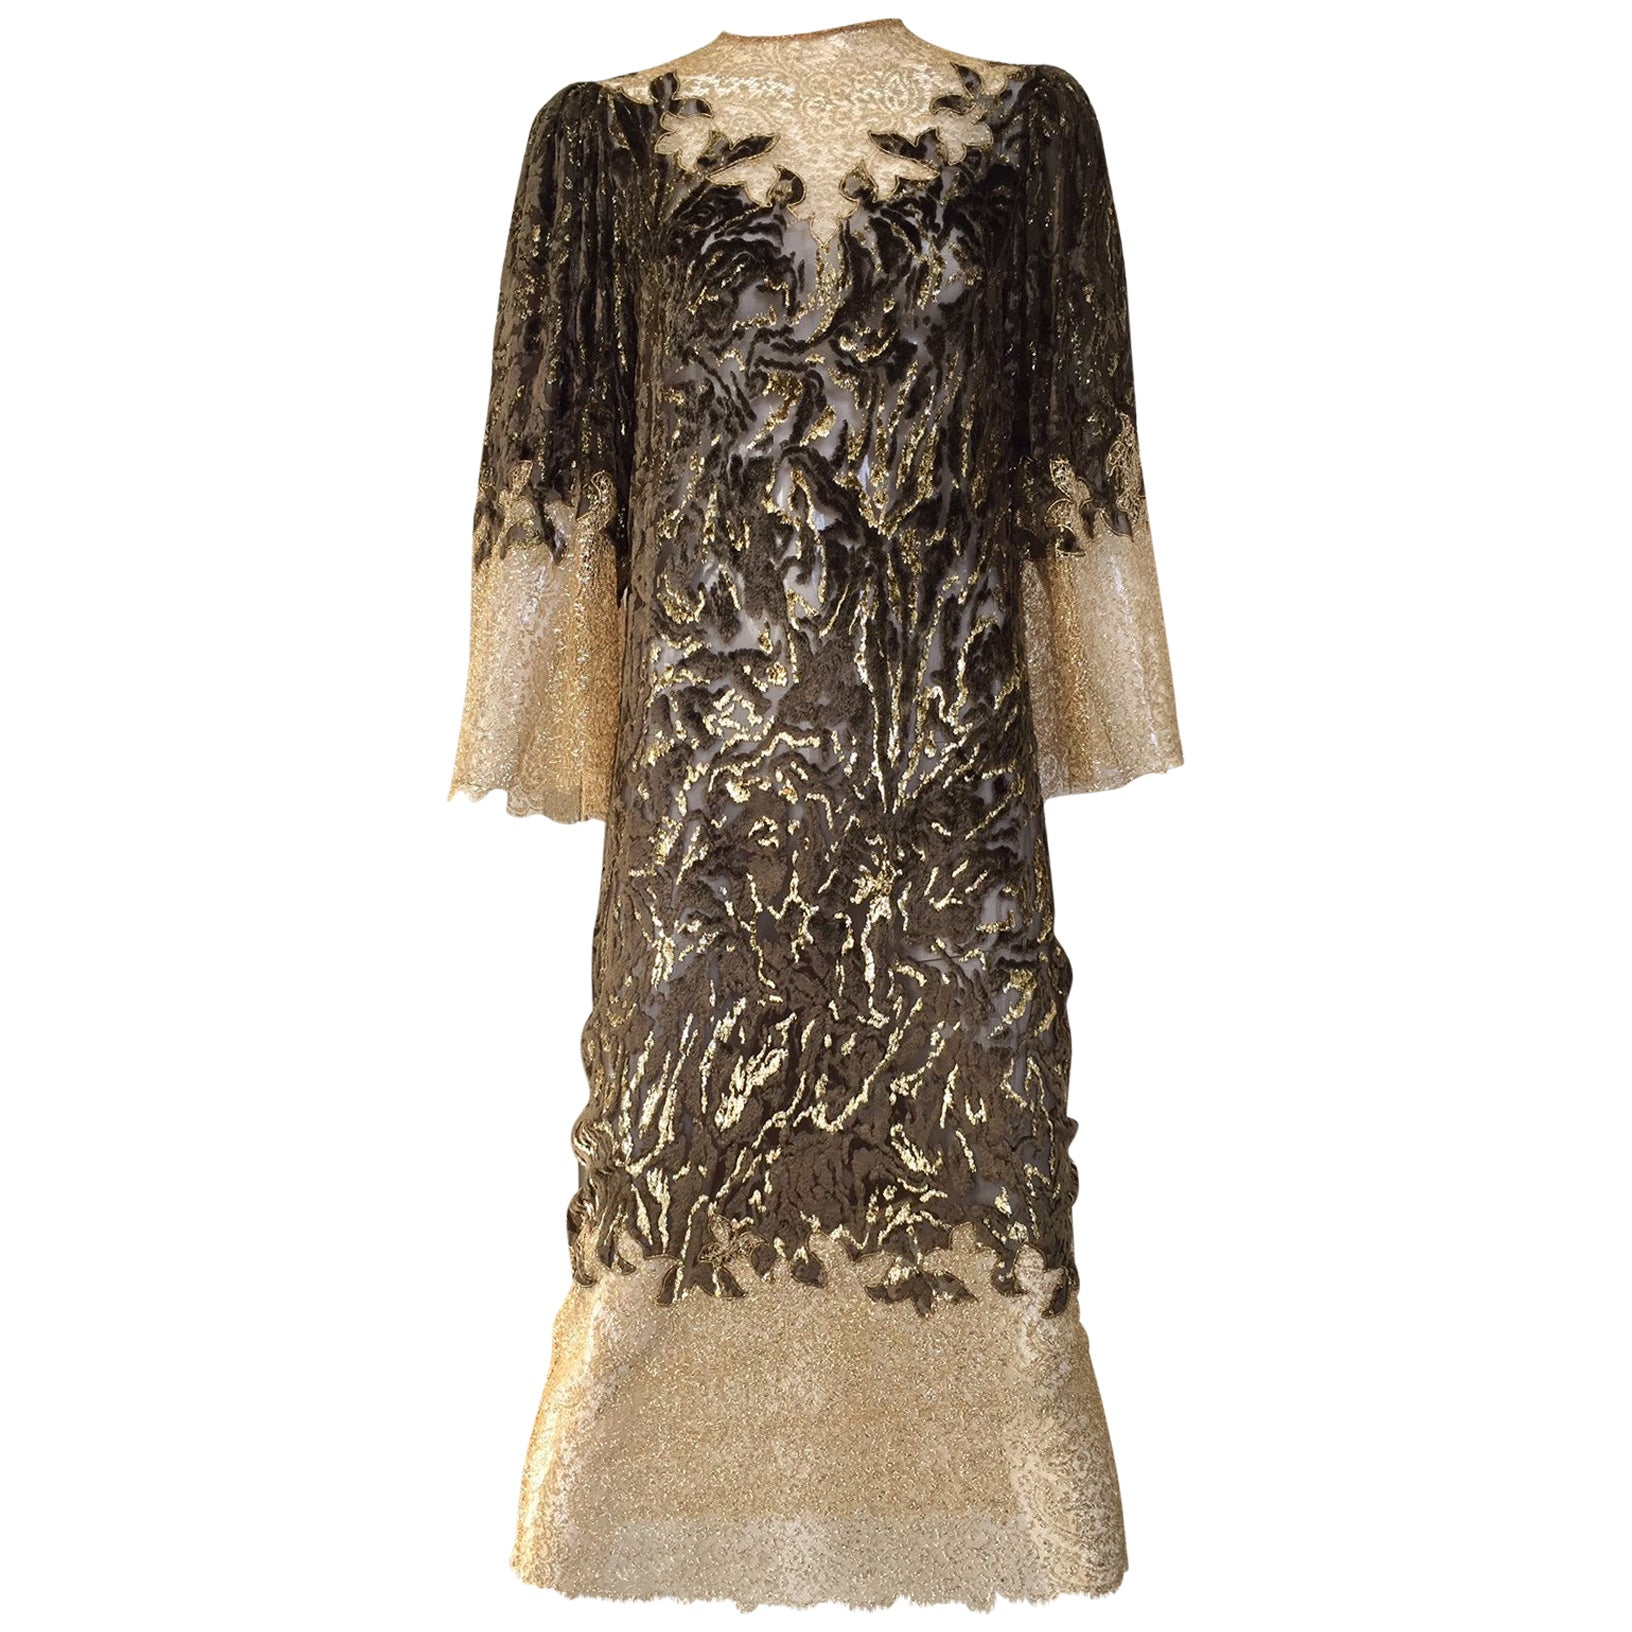 Vintage Oscar De La Renta velvet devore gold lace dress